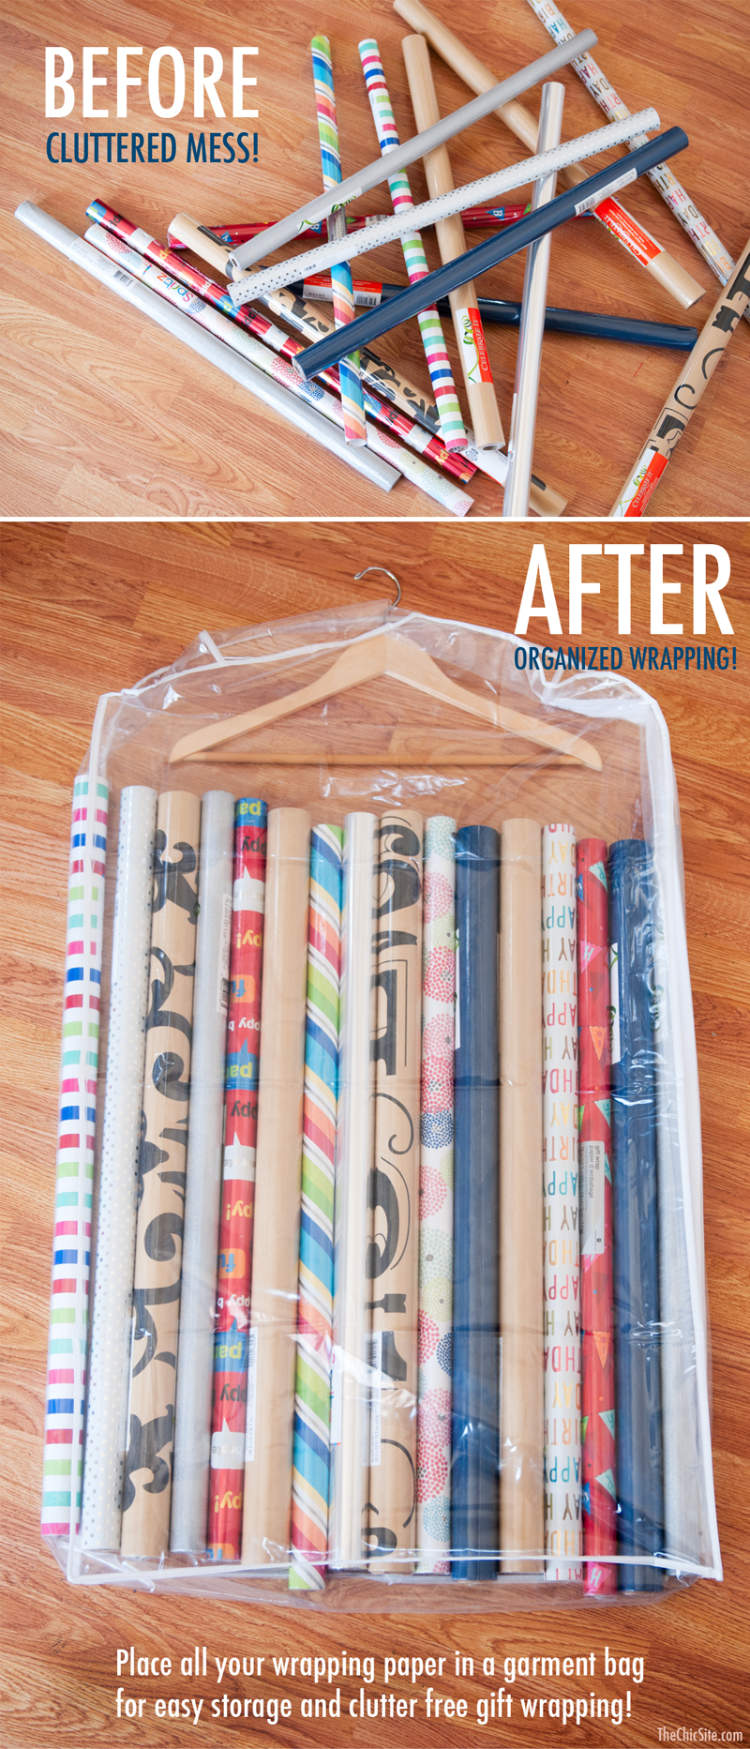 Storage idea - wrapping paper stored neatly in a garment bag to keep it organized and hung in a closet.